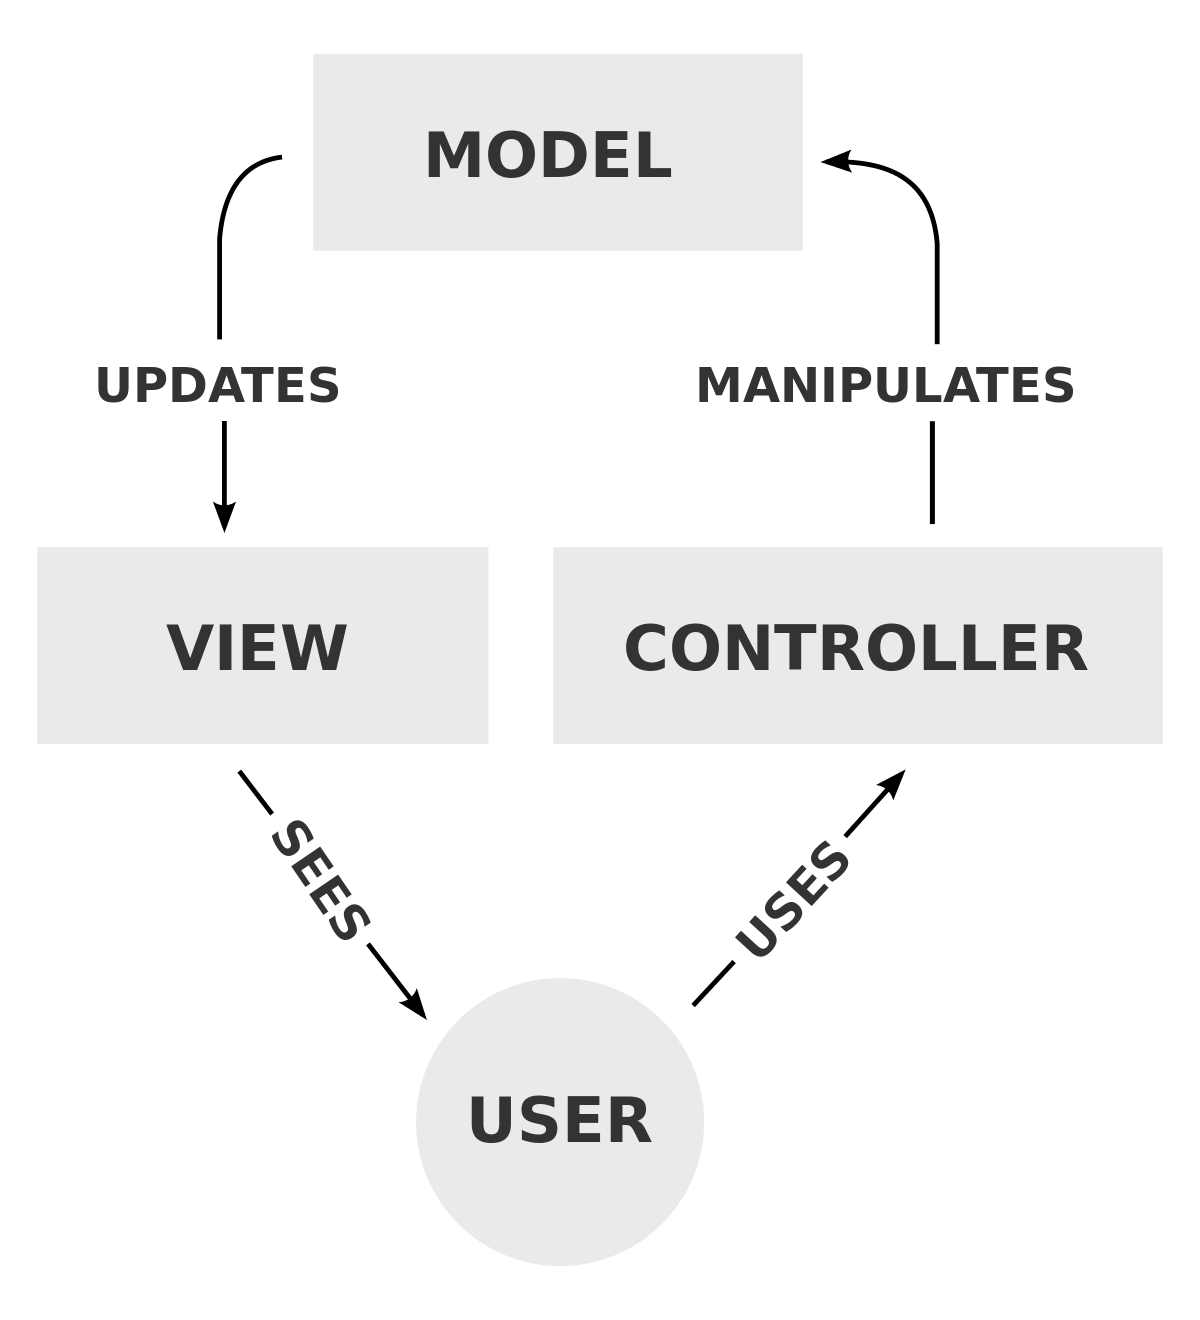 A diagram describing MVC architecture